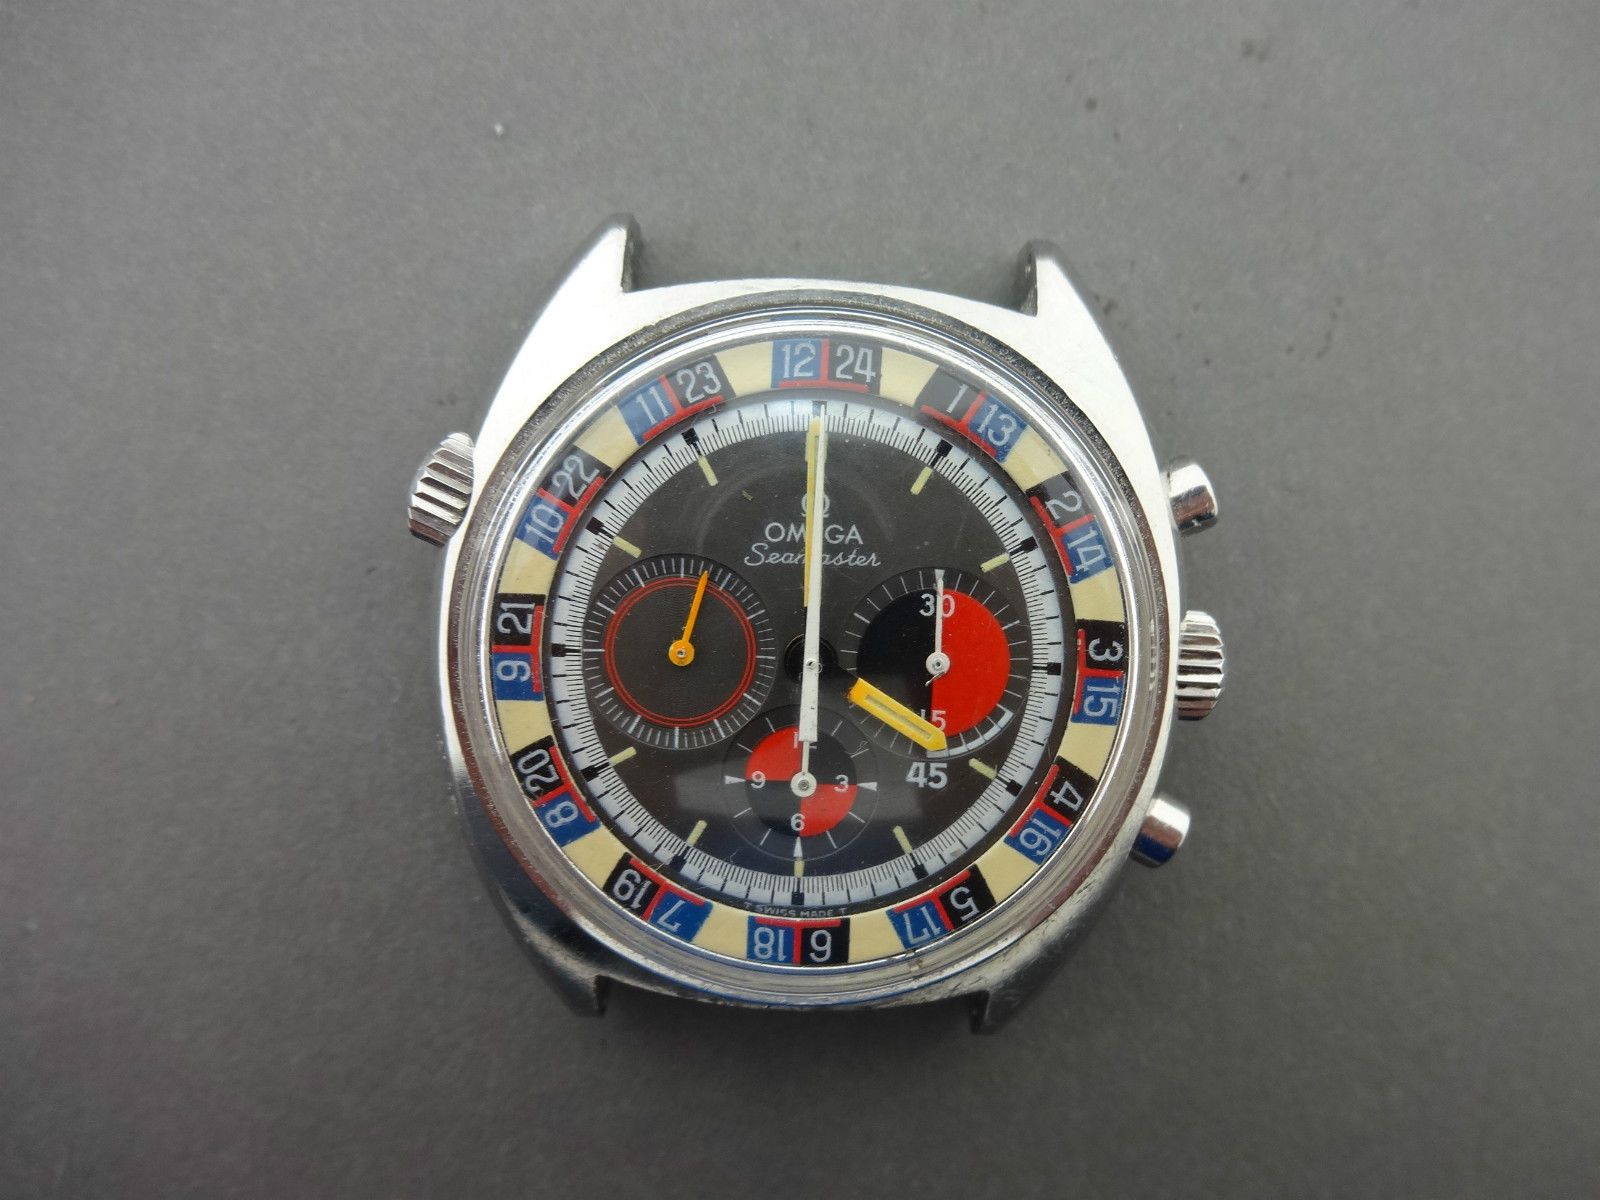 soccer watches ever pinterest the best texaskevinb timer chronograph on omega unbreakable roulette images seamaster